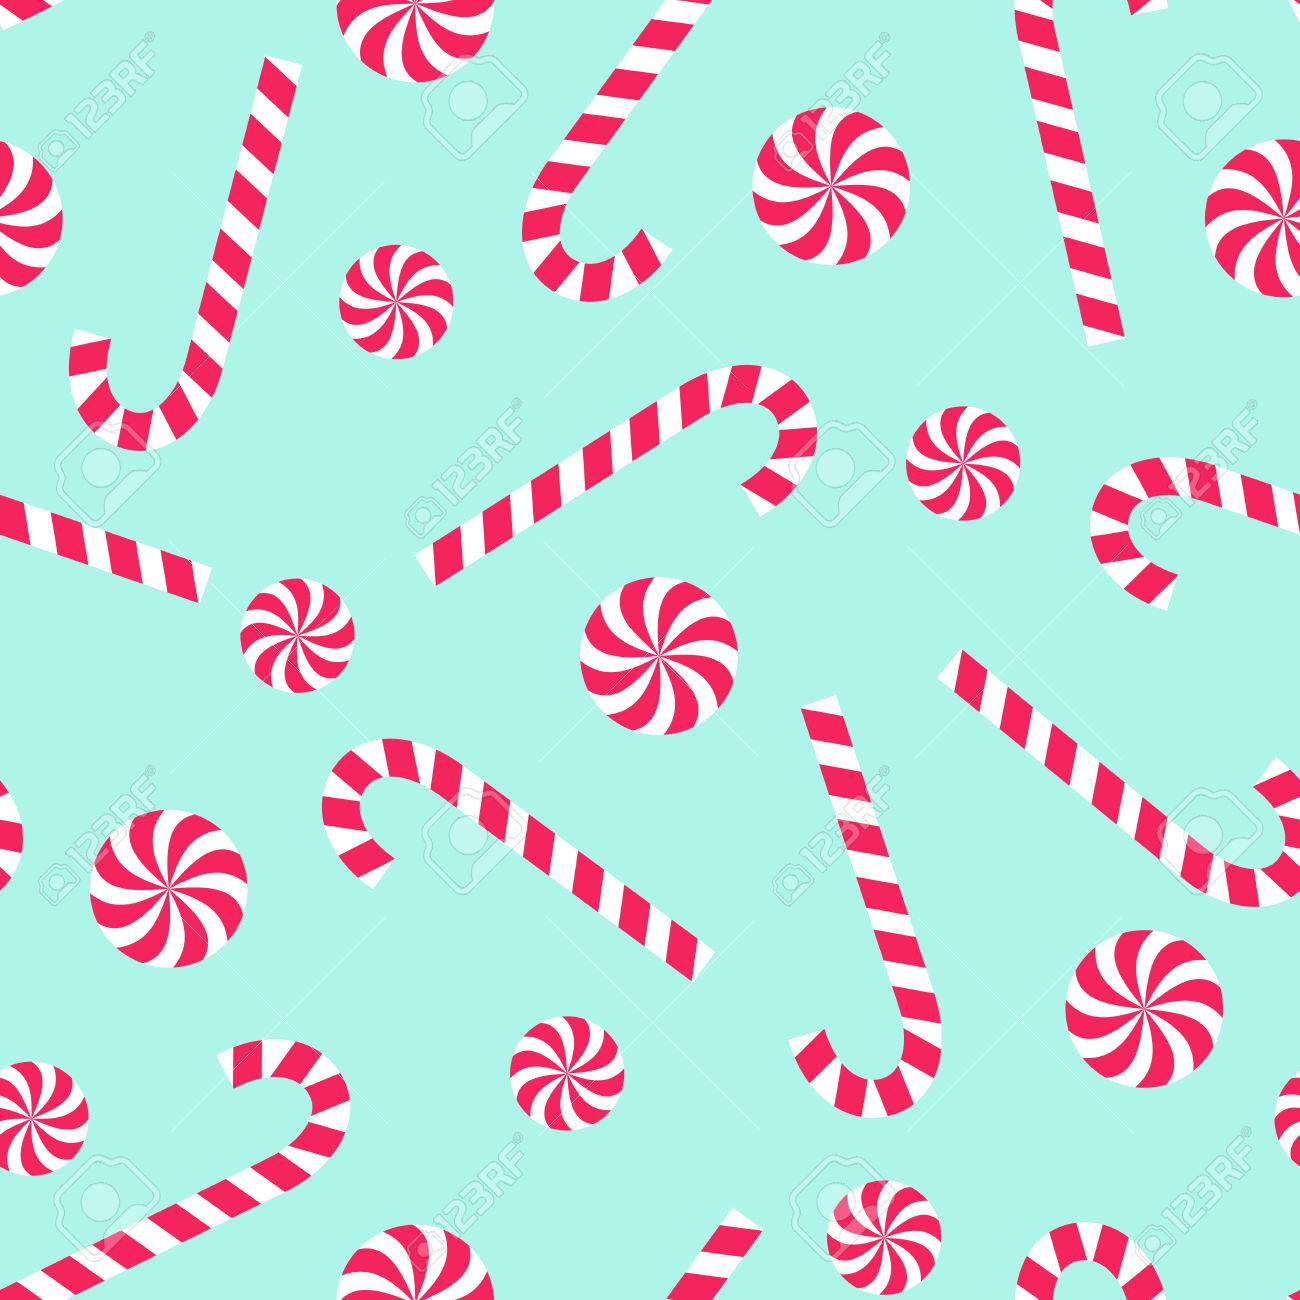 Candy Cane And Lollipop Seamless Christmas Pattern On Mint Green